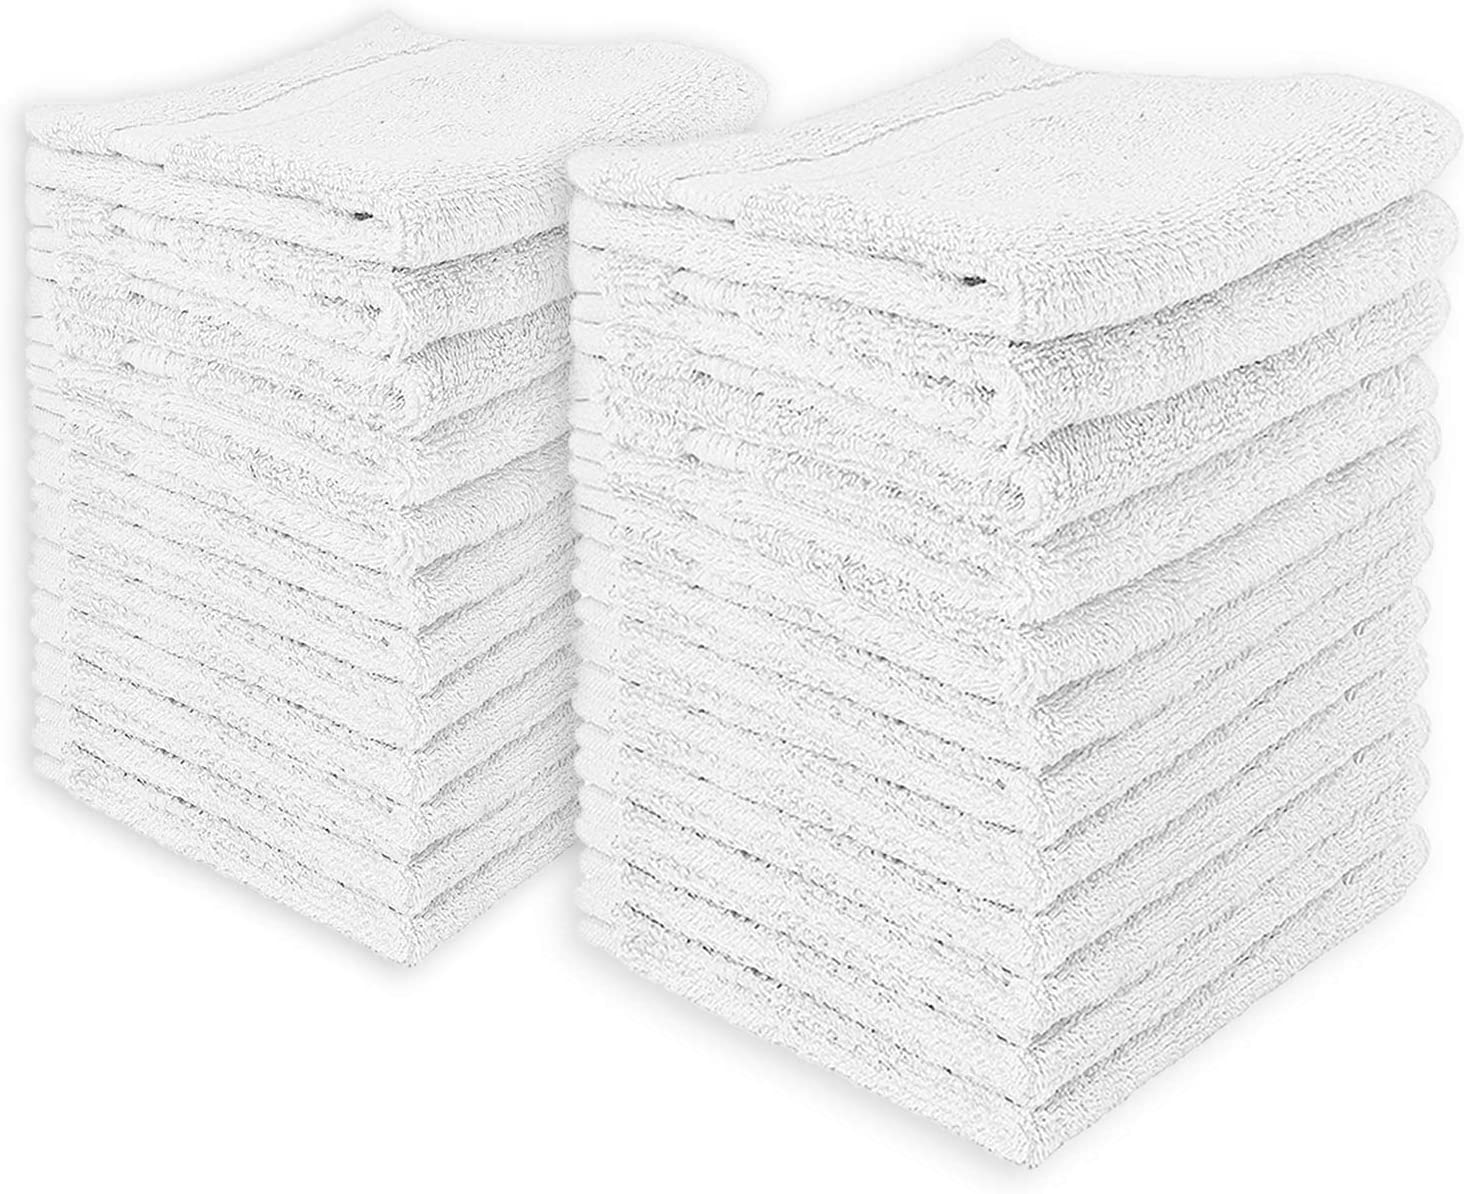 24-Pack White Washcloths - Premium Cotton Face Cloths with Double Stitched Side Hem - Multi-Purpose Wash Rags, Bathroom Towel, Kitchen Towel, and Gym Towel - Machine Washable